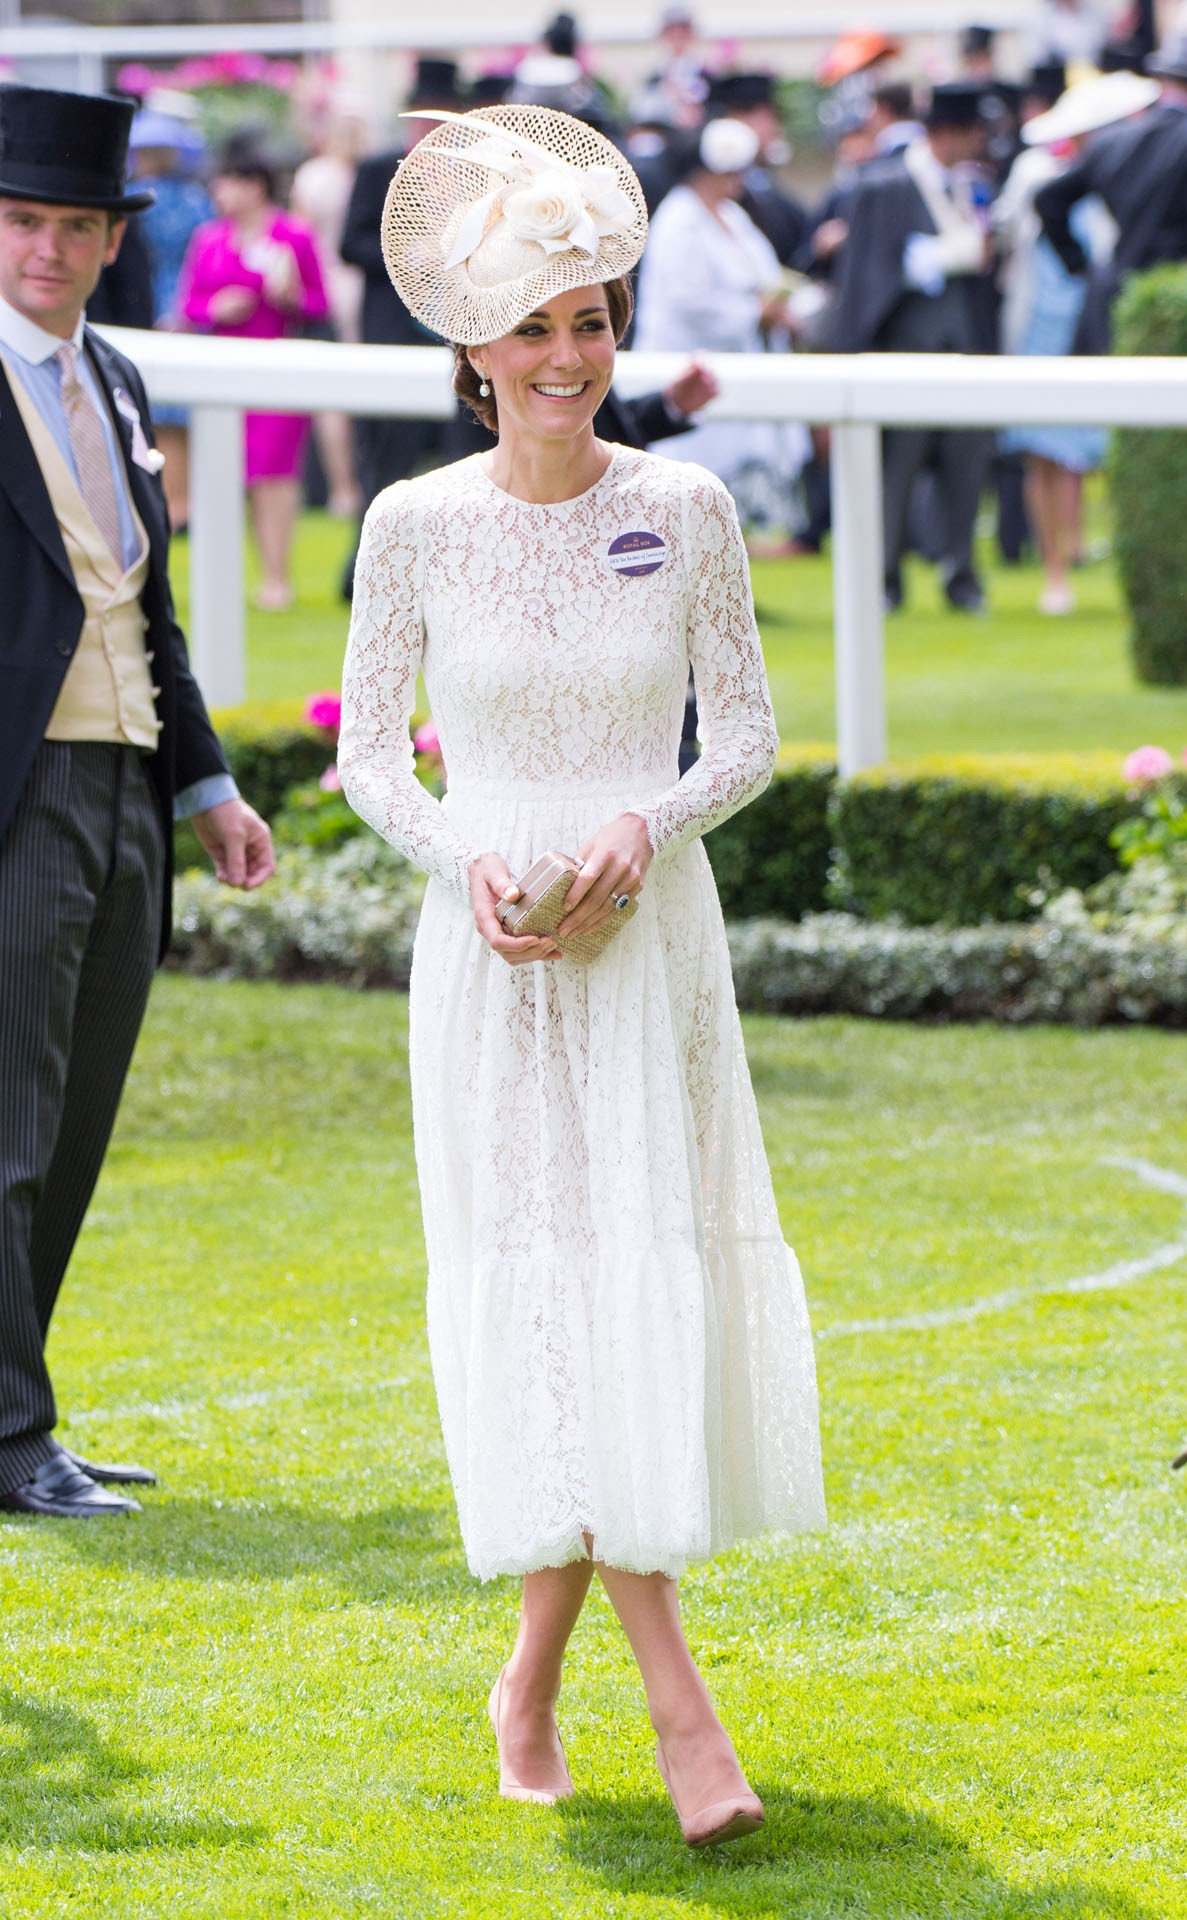 It was the Duchess' first ever visit to Royal Ascot, so there was no doubt she was going to show up in style, but no-one anticipated how stunning she'd look in this cream lace dress. The midi-length gown, by Dolce & Gabbana, was paired with a hat from Jane Taylor and her trusty nude heels.